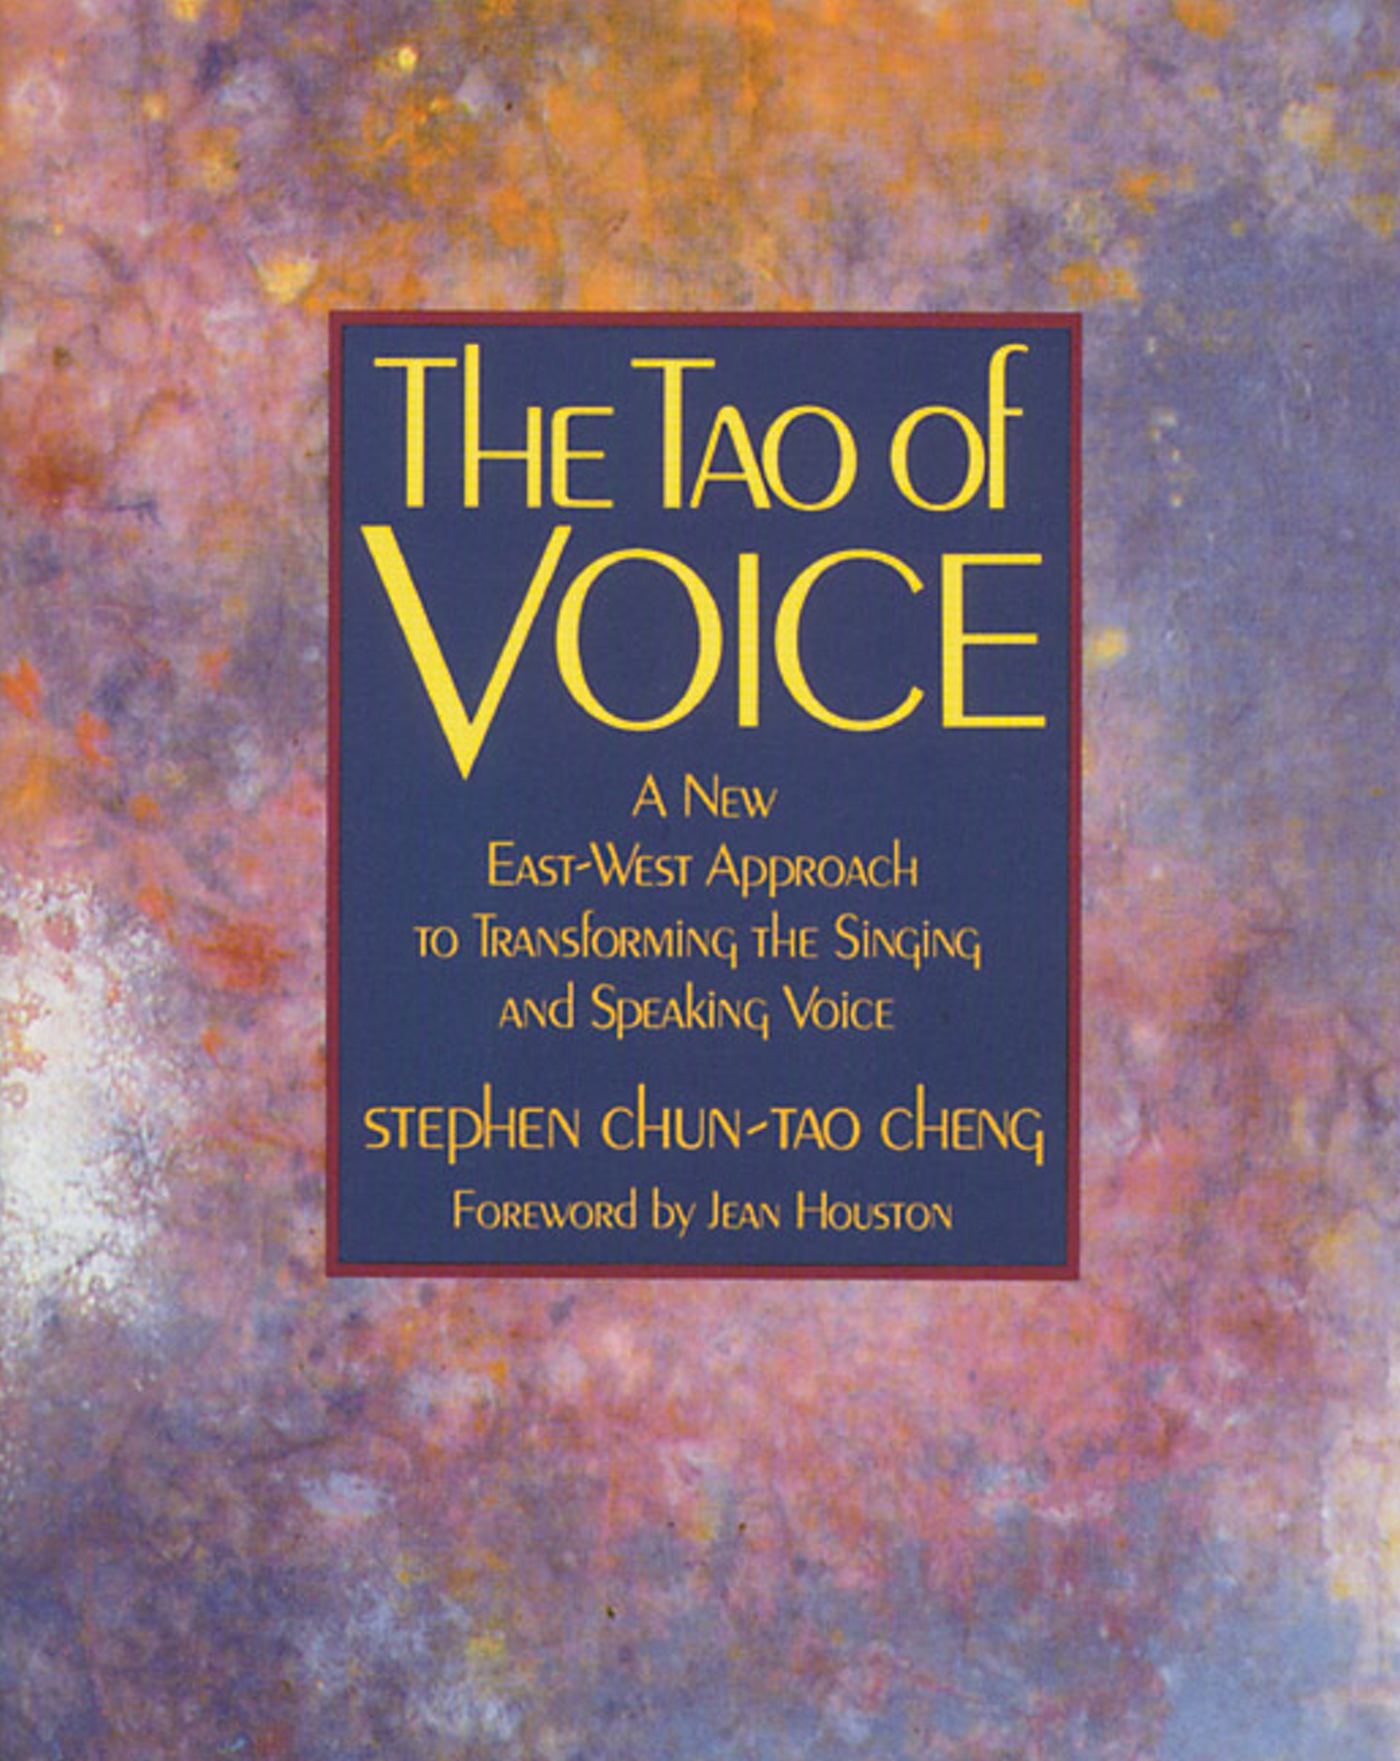 The-tao-of-voice-9780892812608_hr